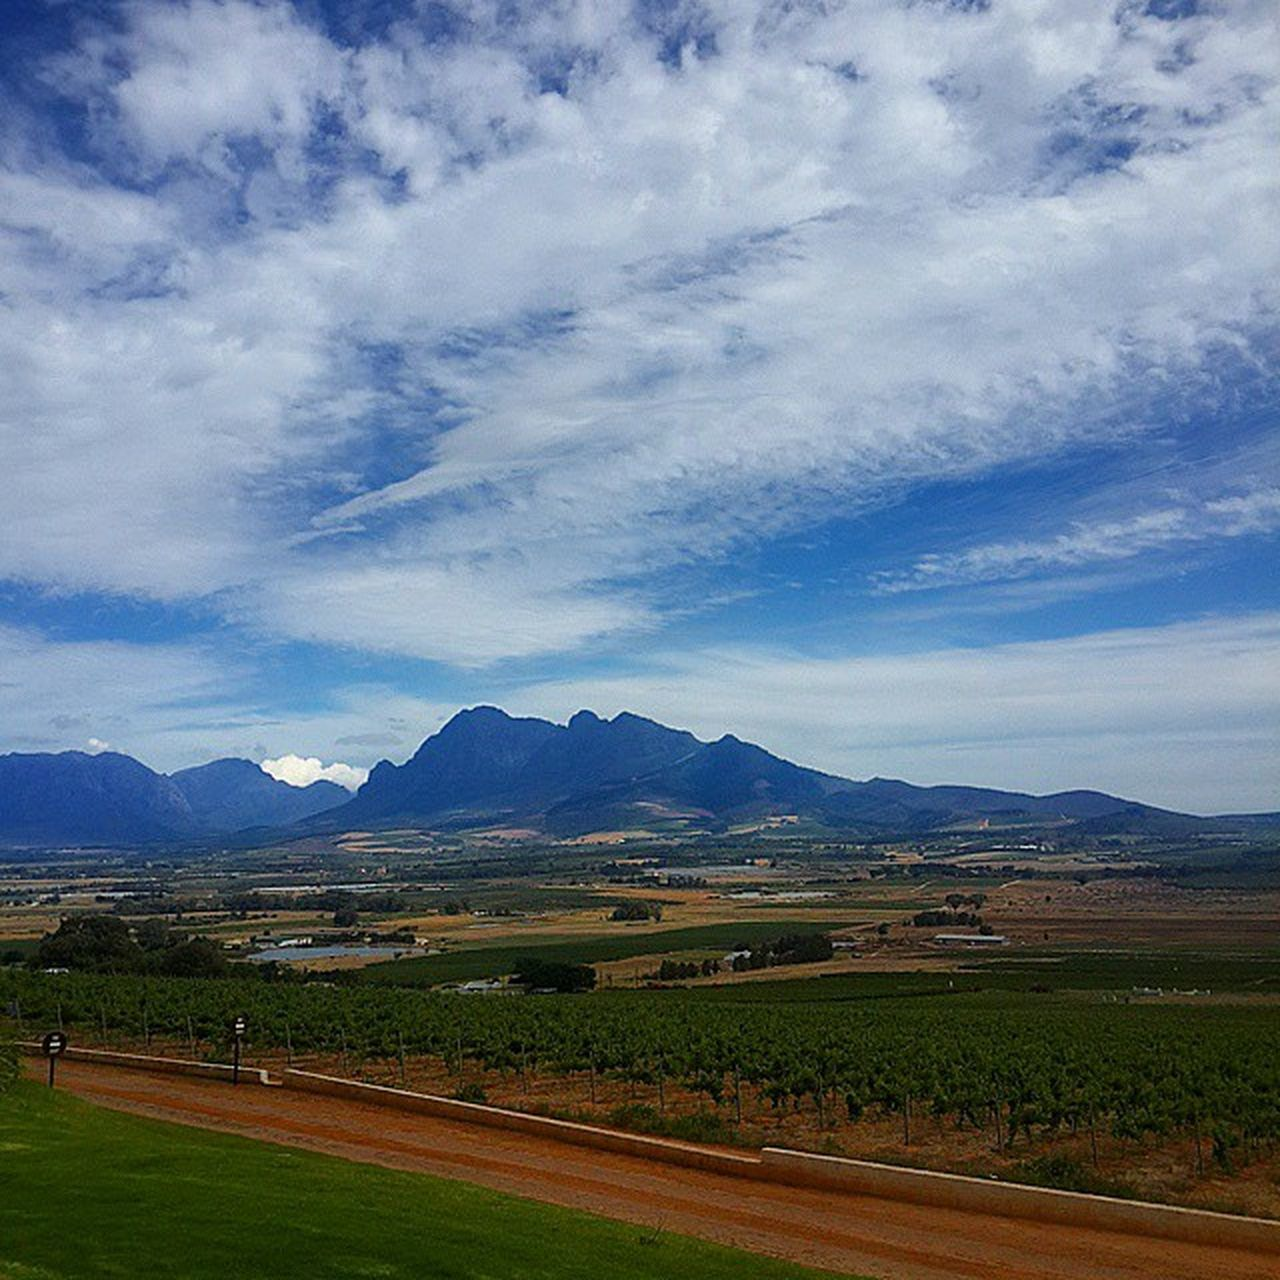 This place @spiceroutepaarl Vscocam VSCO Spiceroute Winefarm vineyard brewery distillery dayout daydrunk SouthAfrica ILoveSA Summer CapeTown LookItsAMountain2014 holiday Paarl nofilter scenic cloud clouds bluesky cloudporn pretty instahappy happiness instanature